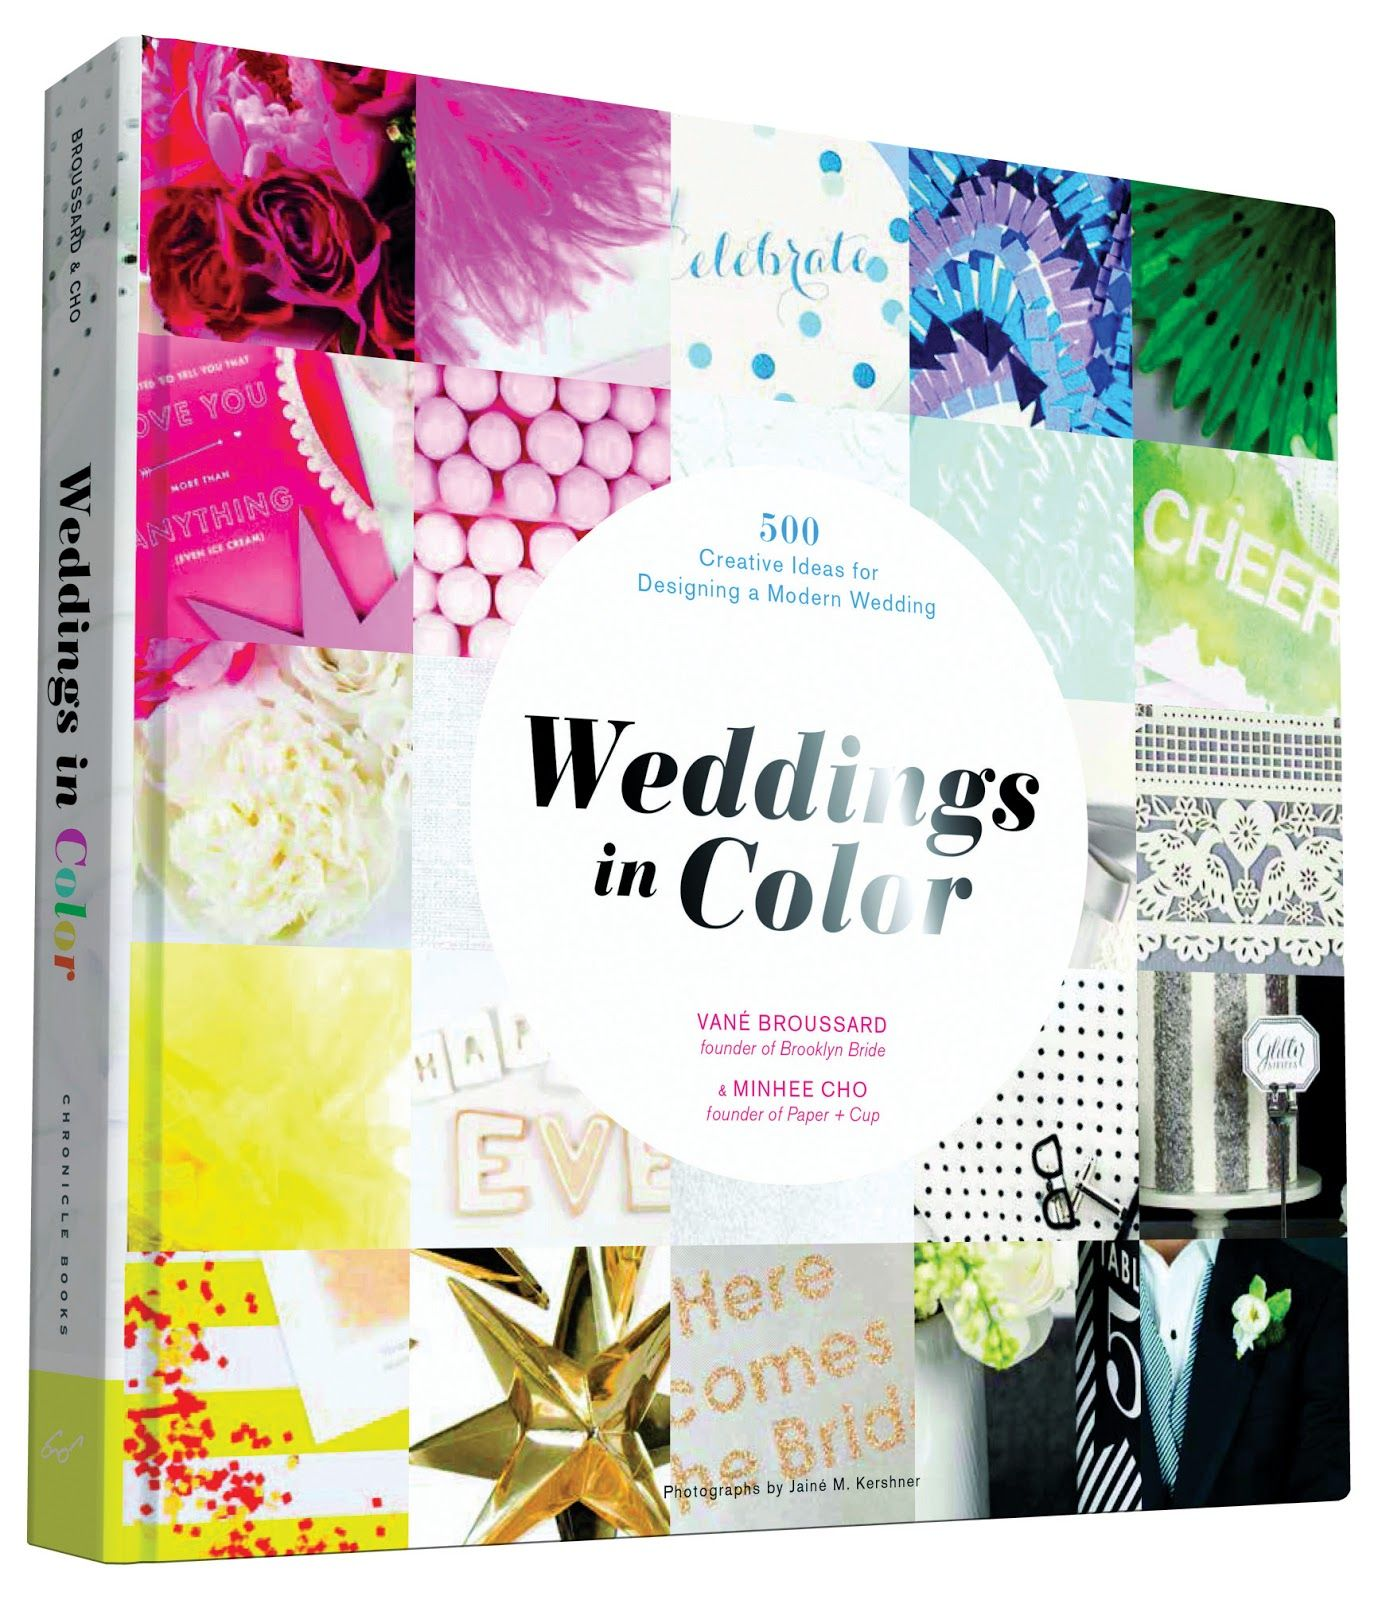 Weddings in Color book is now available for Pre-Order!! brooklyn wedding photographer : brklyn view photography